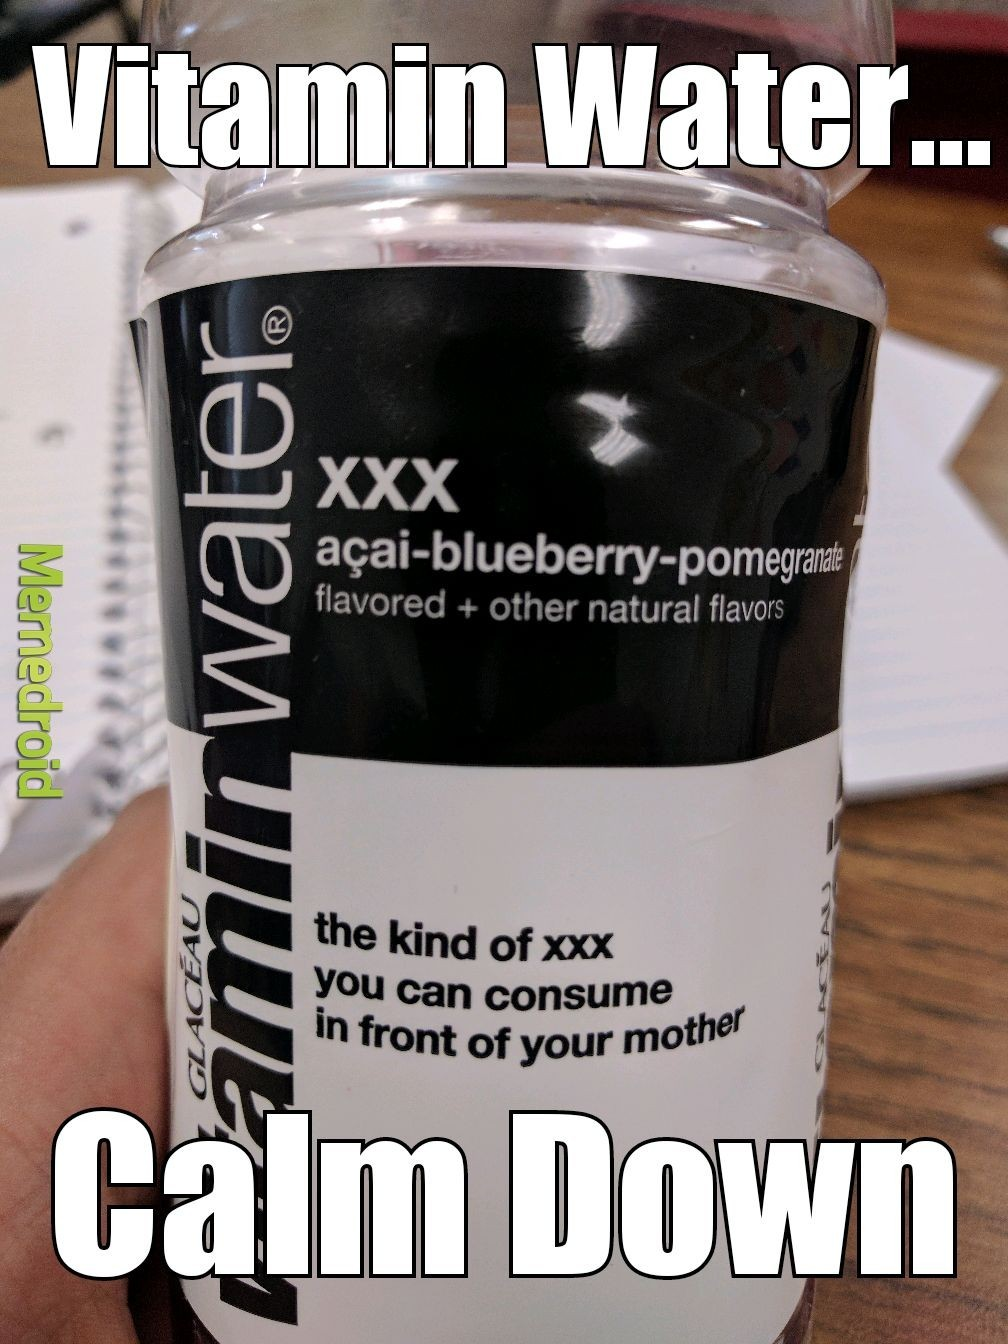 XXX is the best flavor.